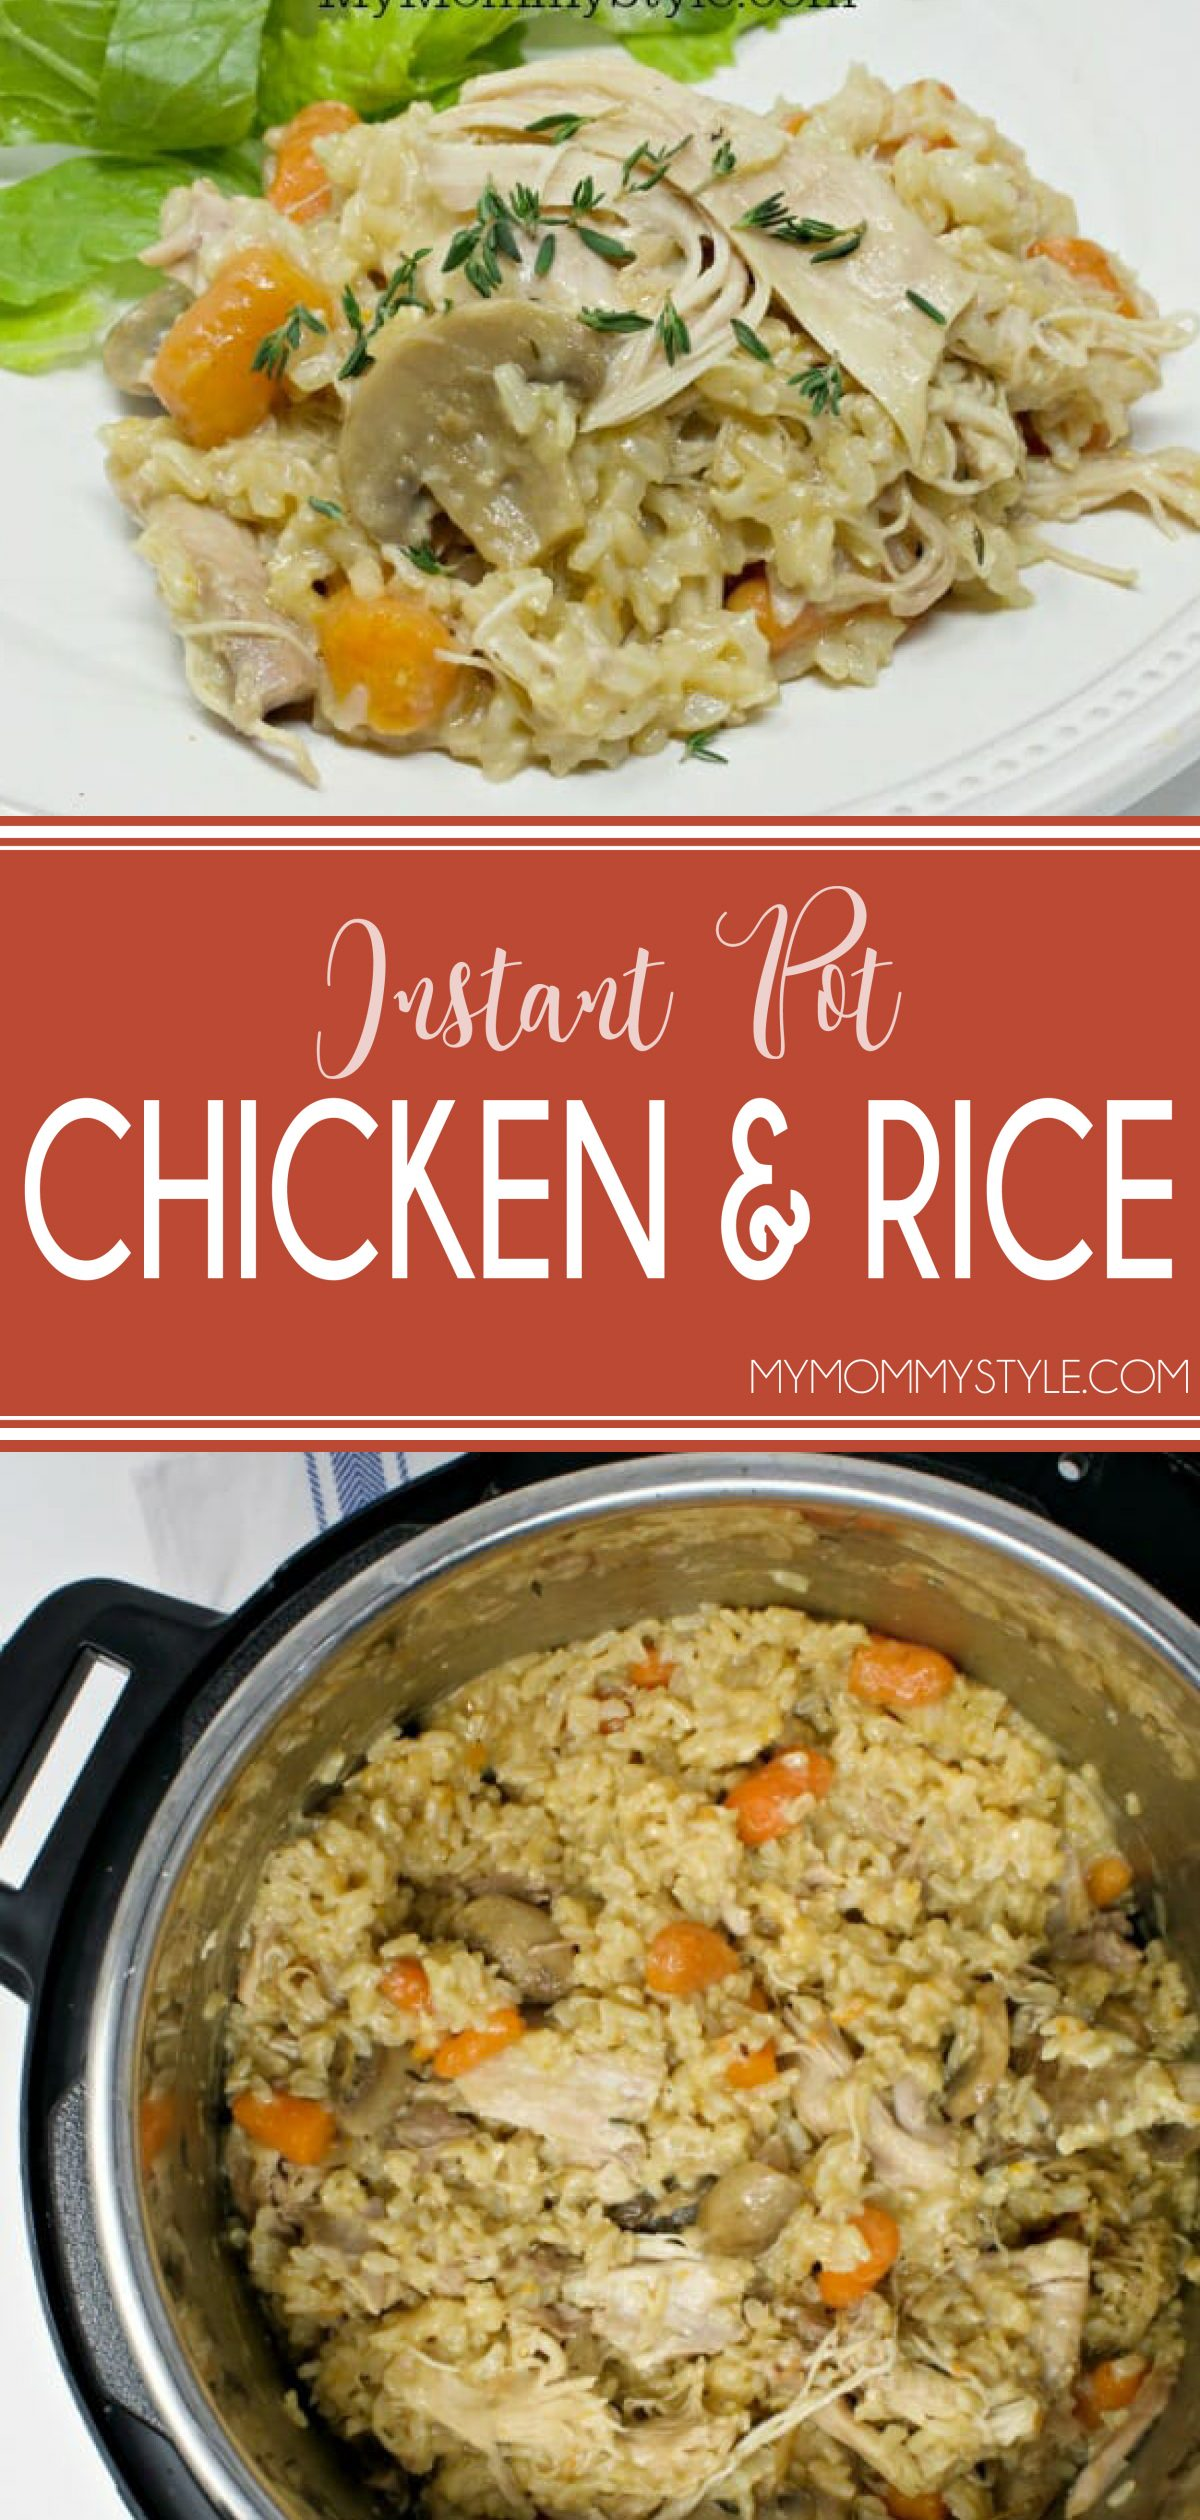 This Instant Pot chicken and brown rice is so simple and turns out perfectly every time. Ultimate comfort food in less time than the oven version. via @mymommystyle